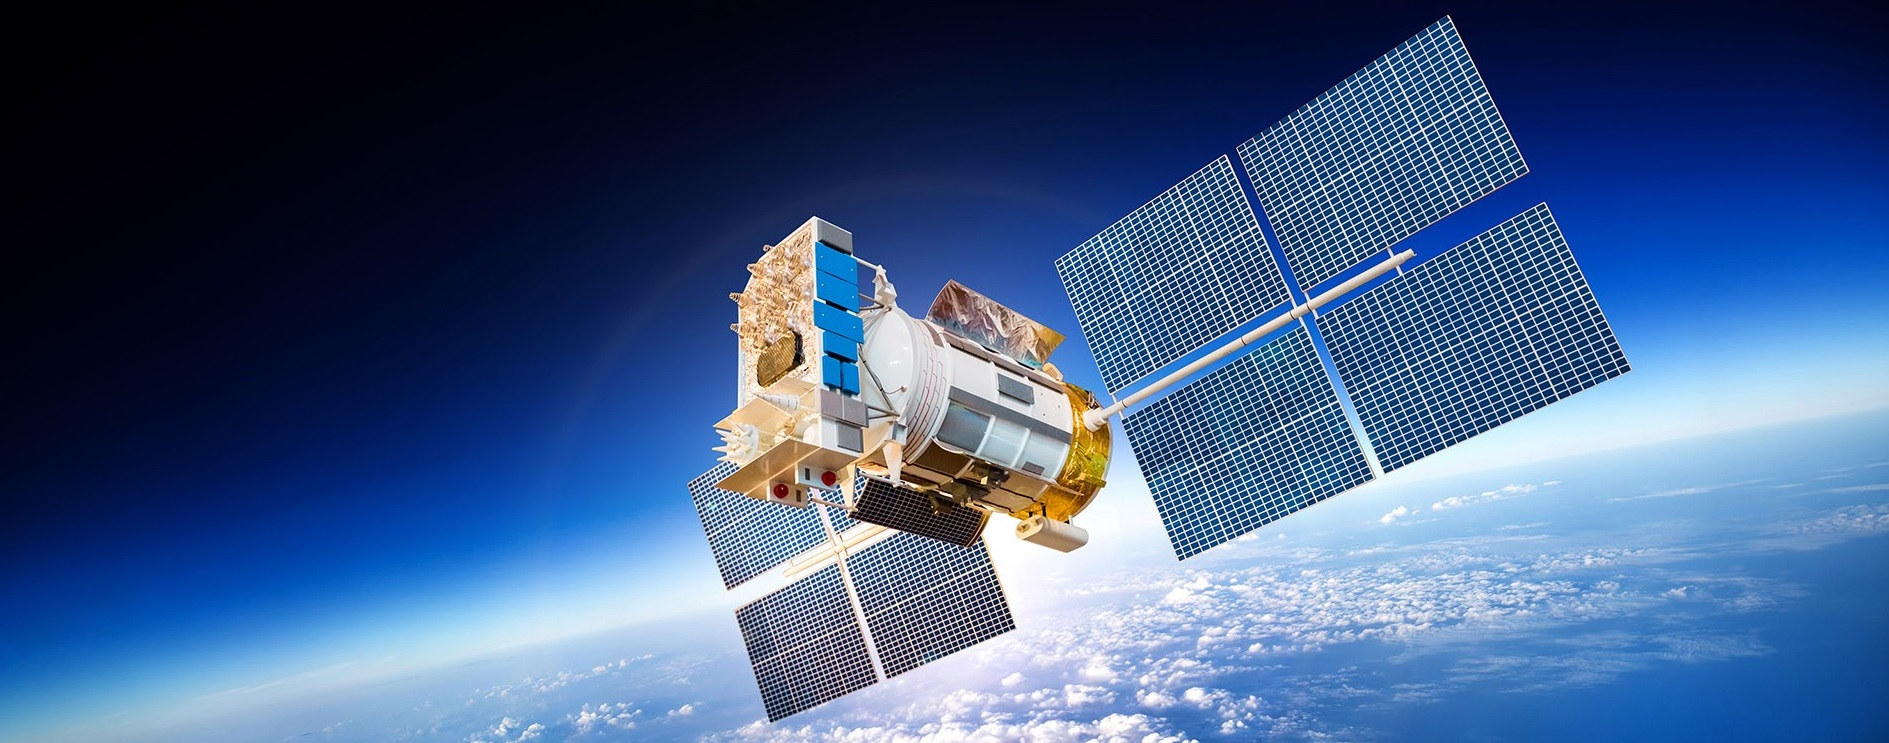 Repair-Course-Correction-and-Decommissioning-of-Larger-Satellites